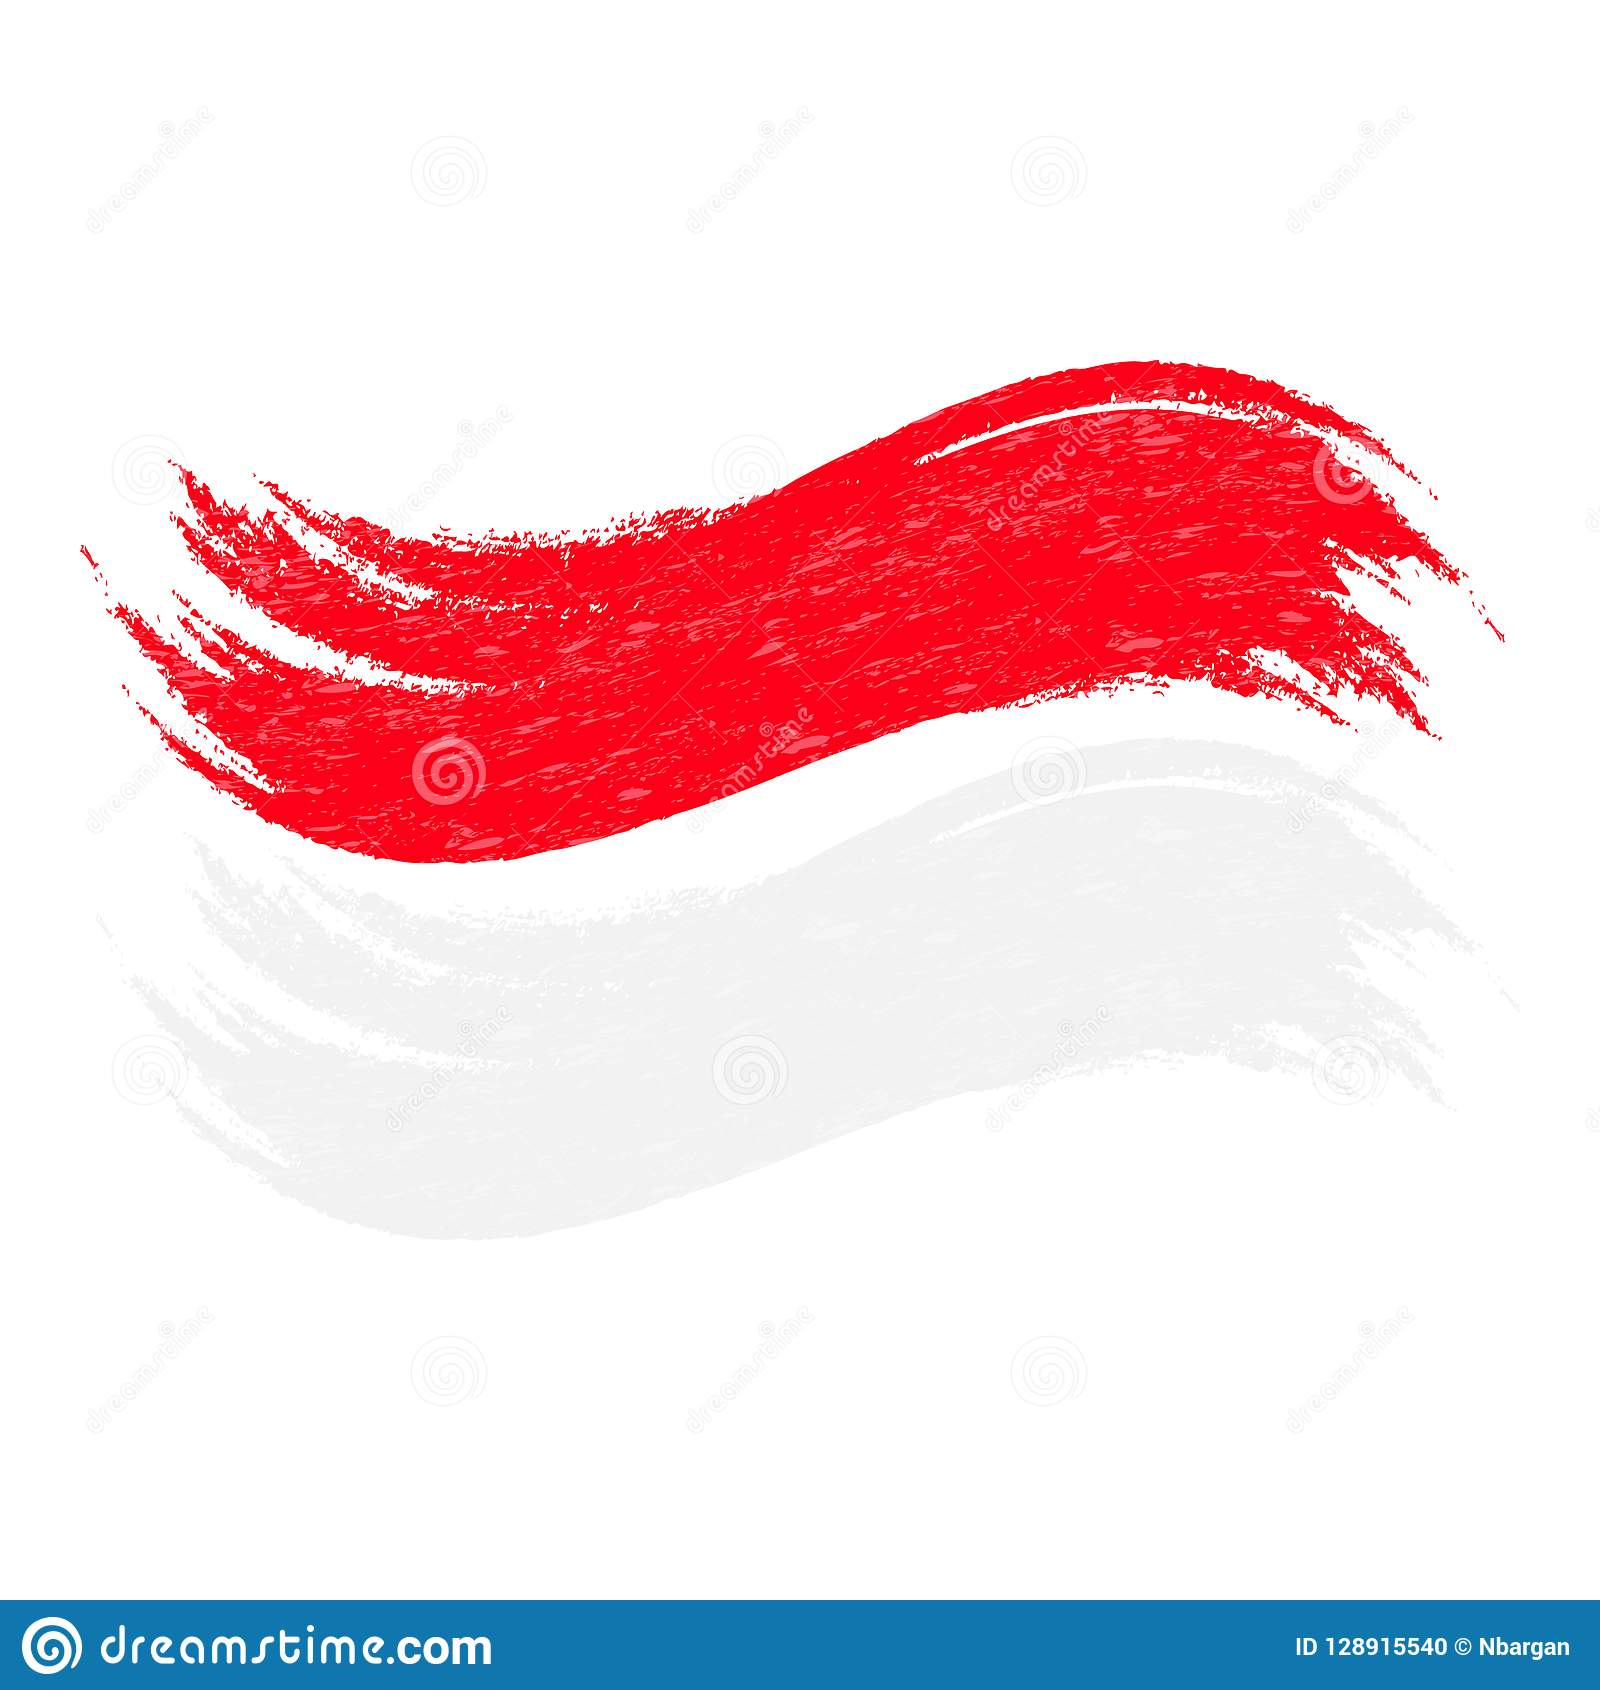 Grunge Brush Stroke With National Flag Of Indonesia Isolated On A.